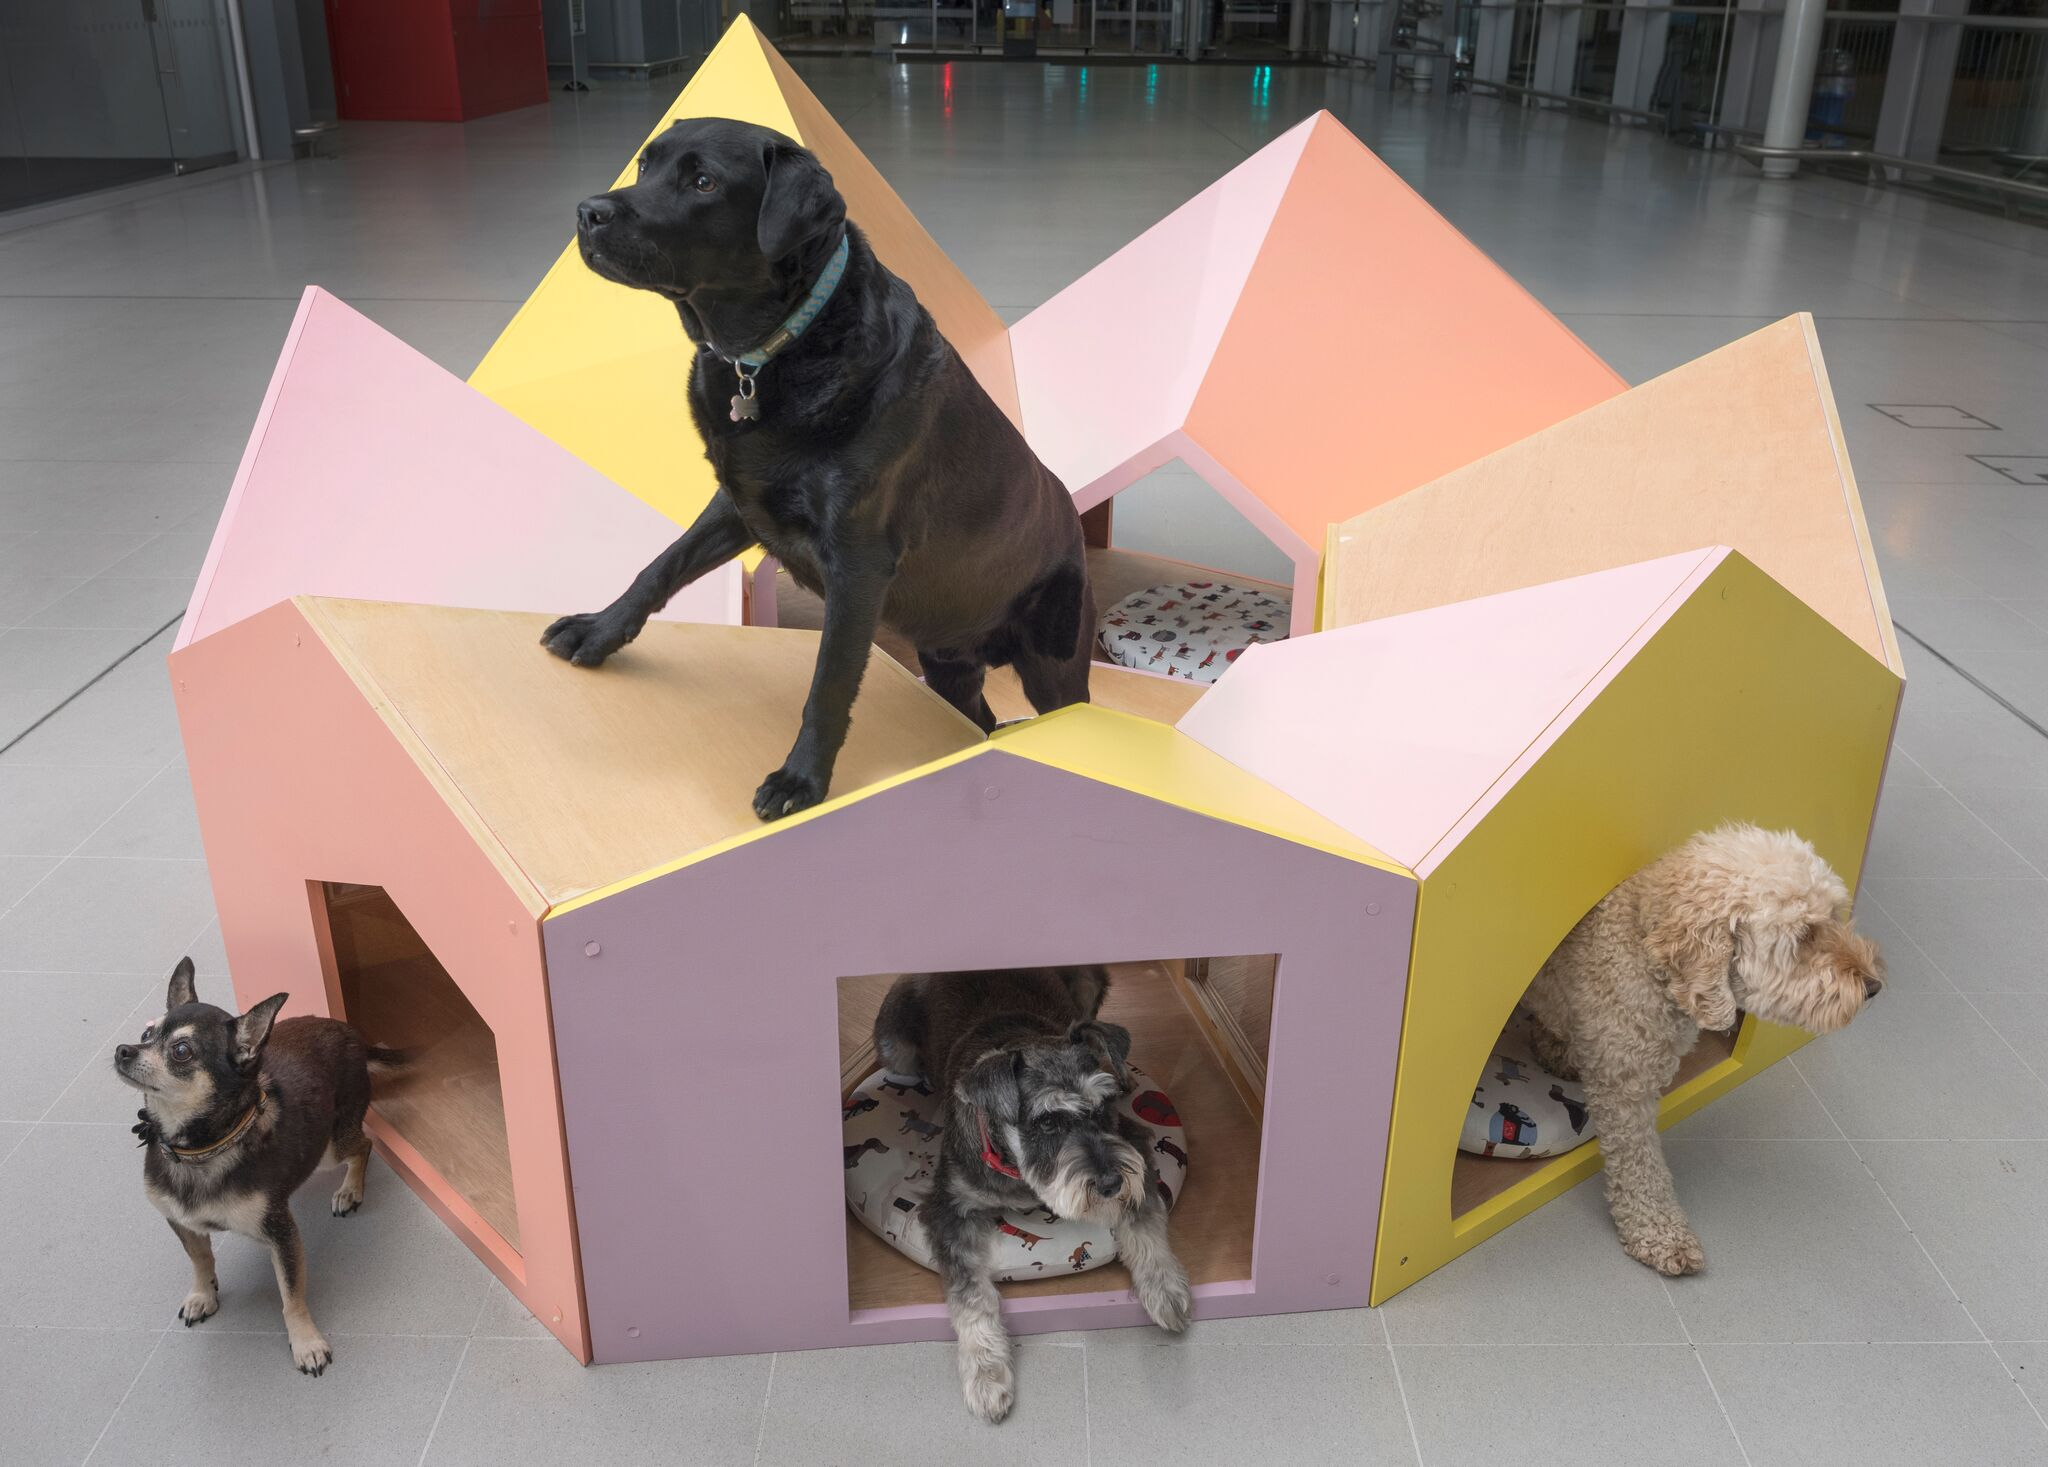 Lot 58 - Reservoir Dogs - A Kennel for Friends - SPARK Architects